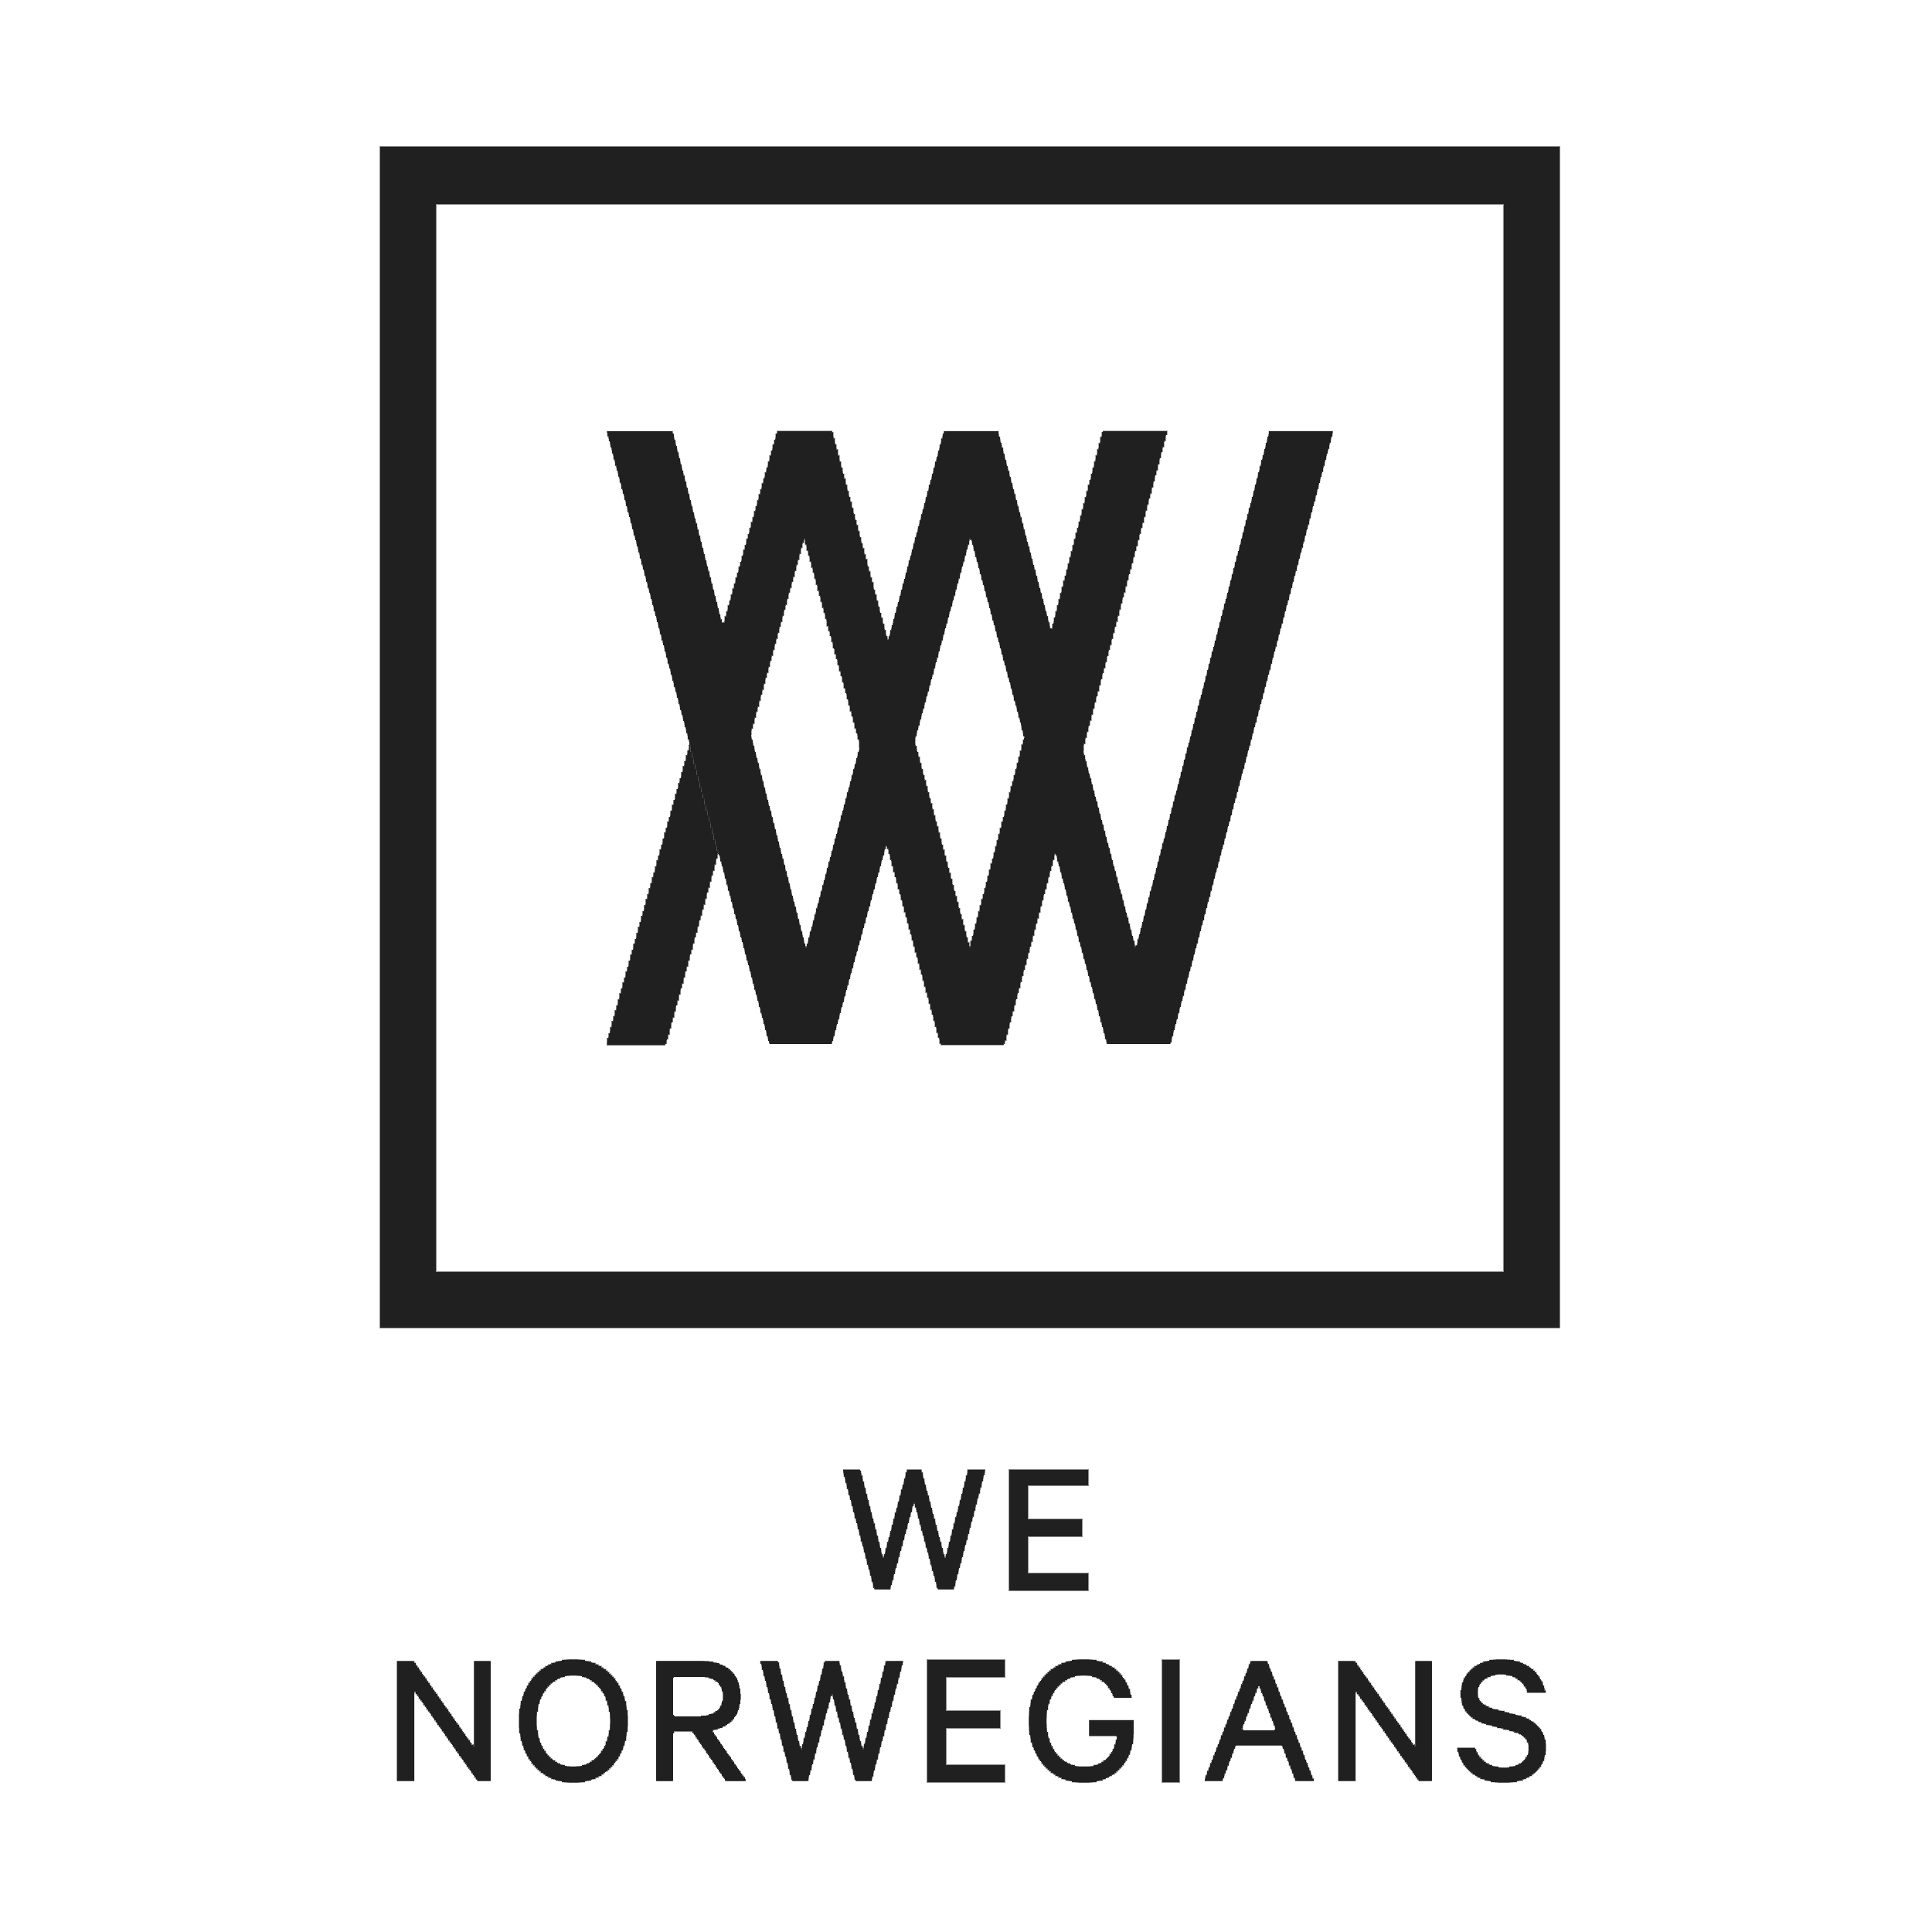 WeNorwegians_logo Transparent.png